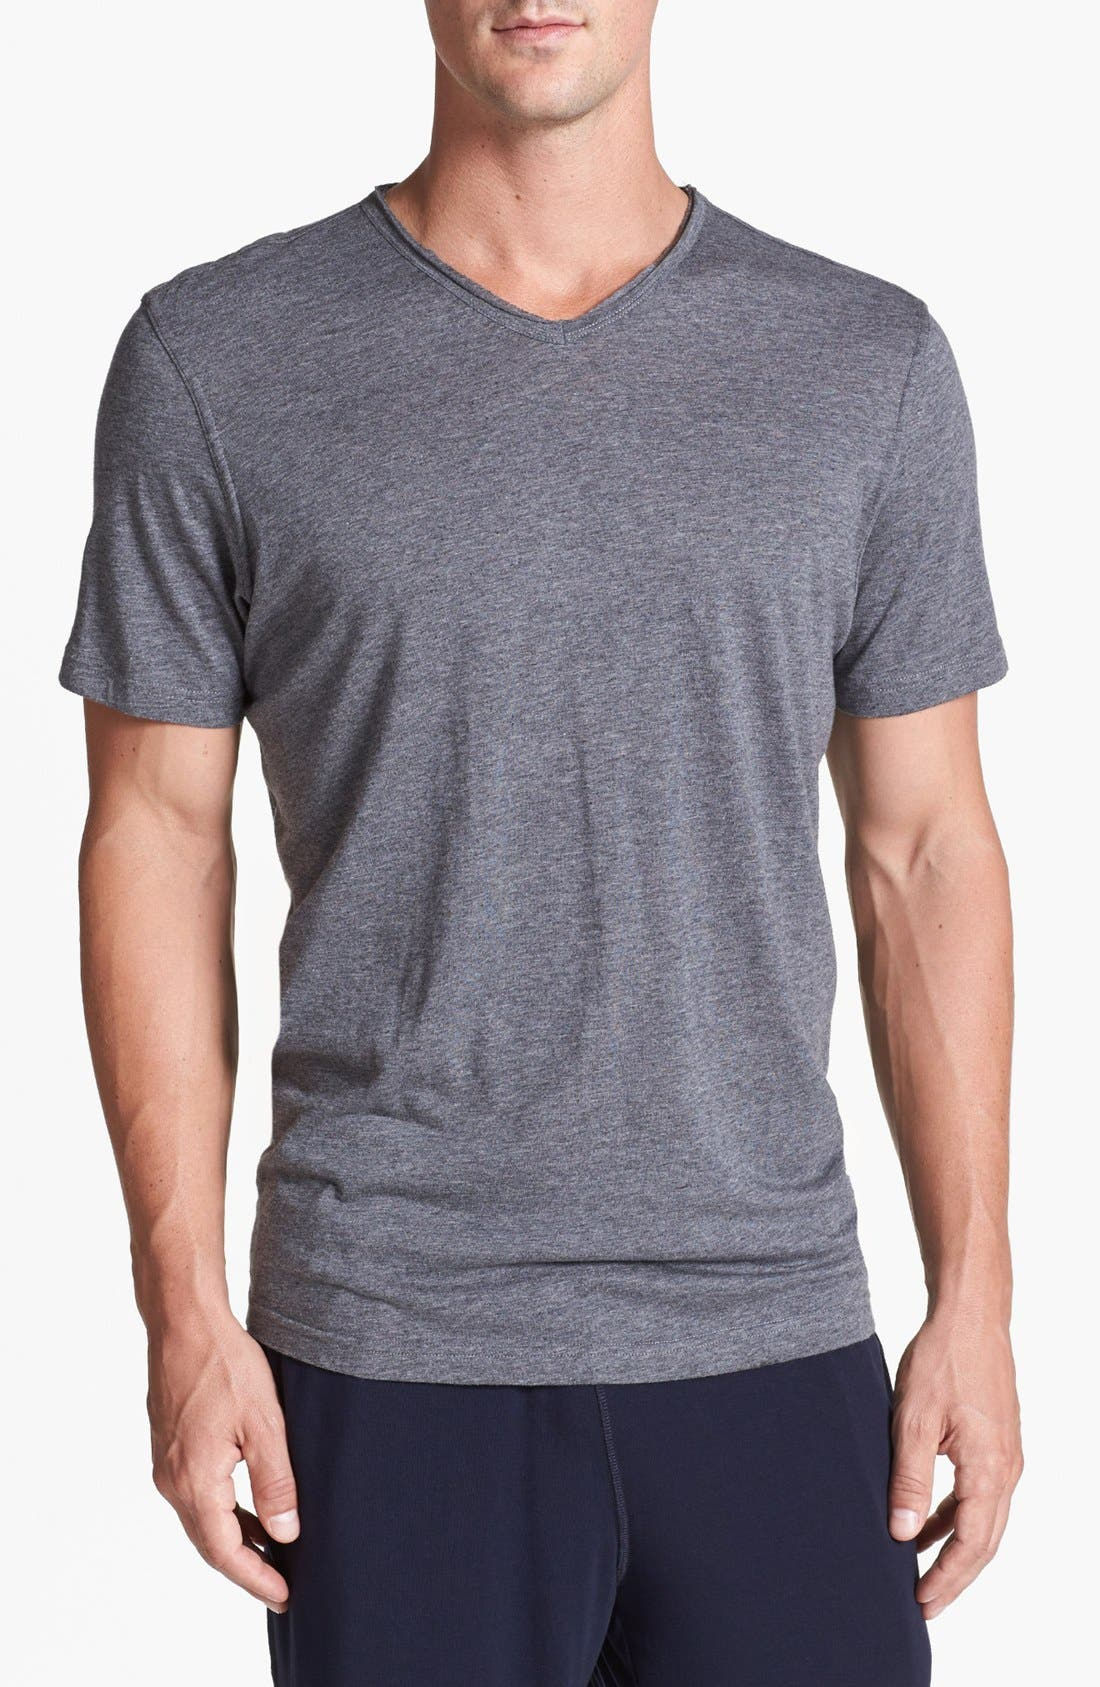 Alternate Image 1 Selected - Daniel Buchler Cotton Blend V-Neck T-Shirt